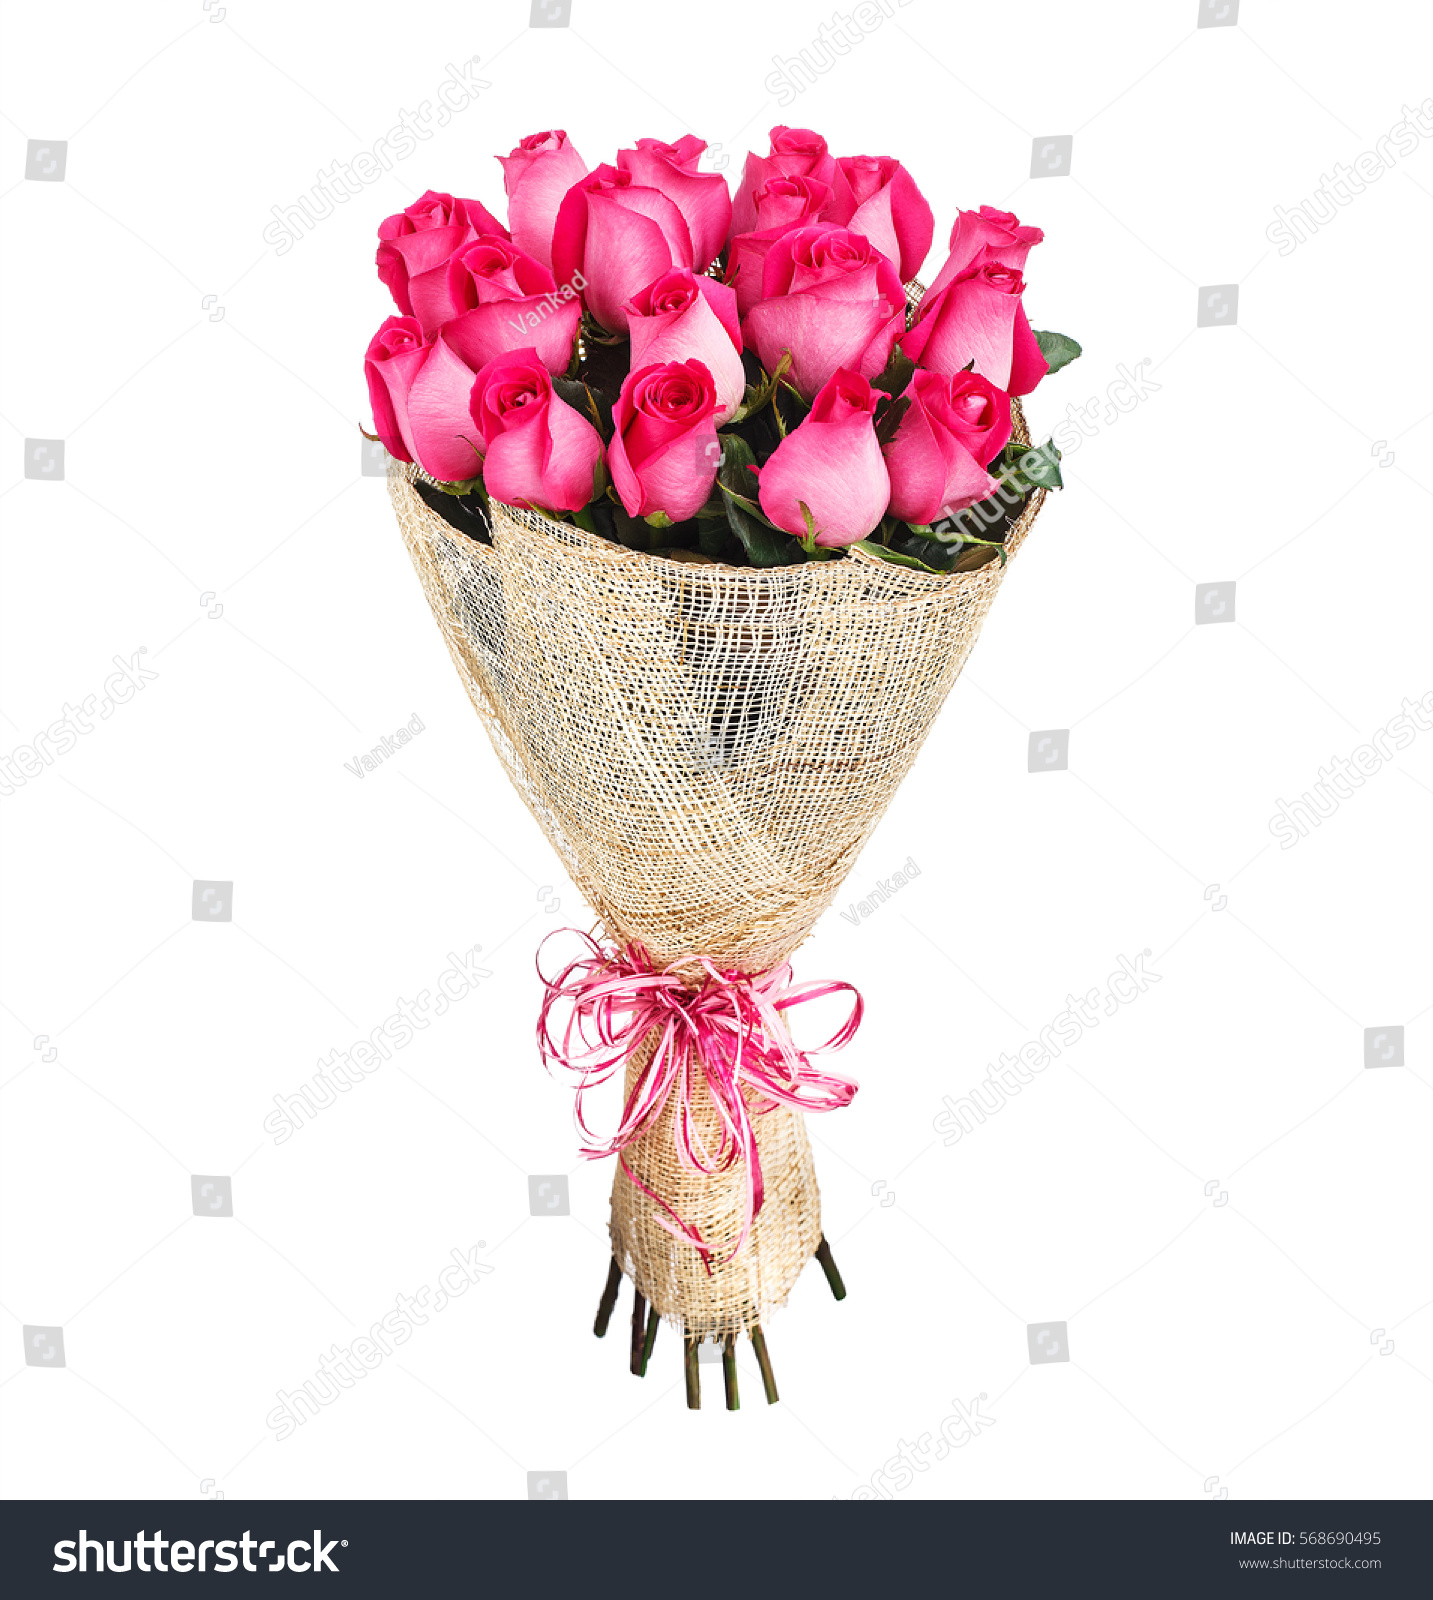 Flower bouquet pink roses stock photo edit now 568690495 flower bouquet of pink roses izmirmasajfo